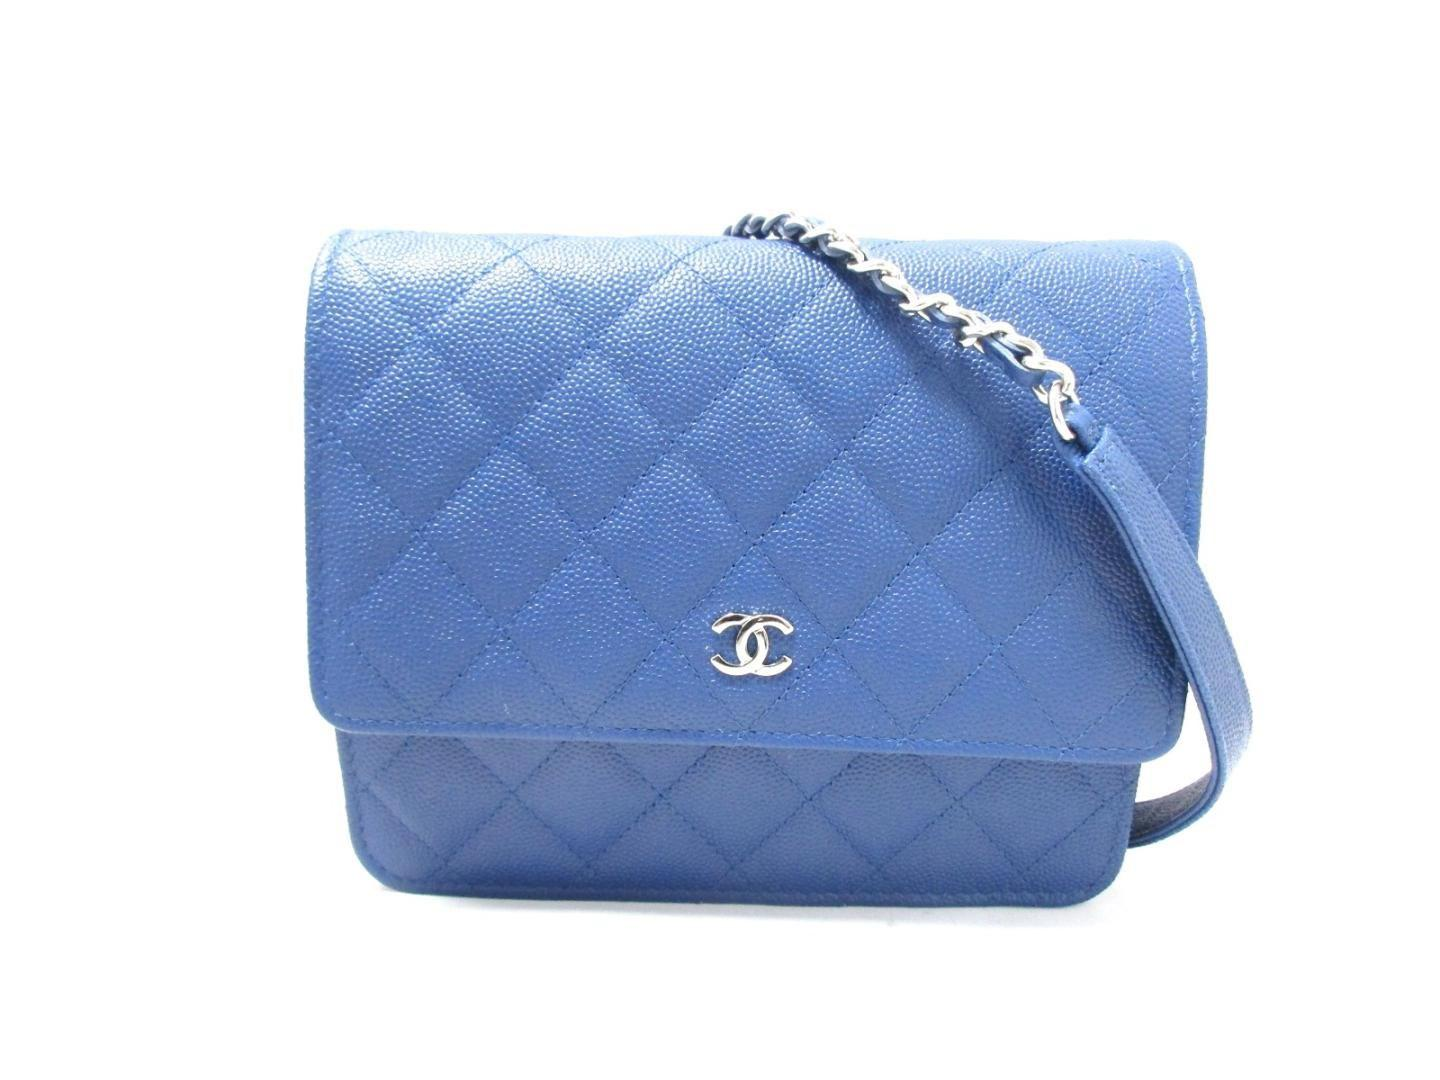 95c8feca89ca Lyst - Chanel Wallet On Chain Shoulder Bag Quilted Caviar Leather ...